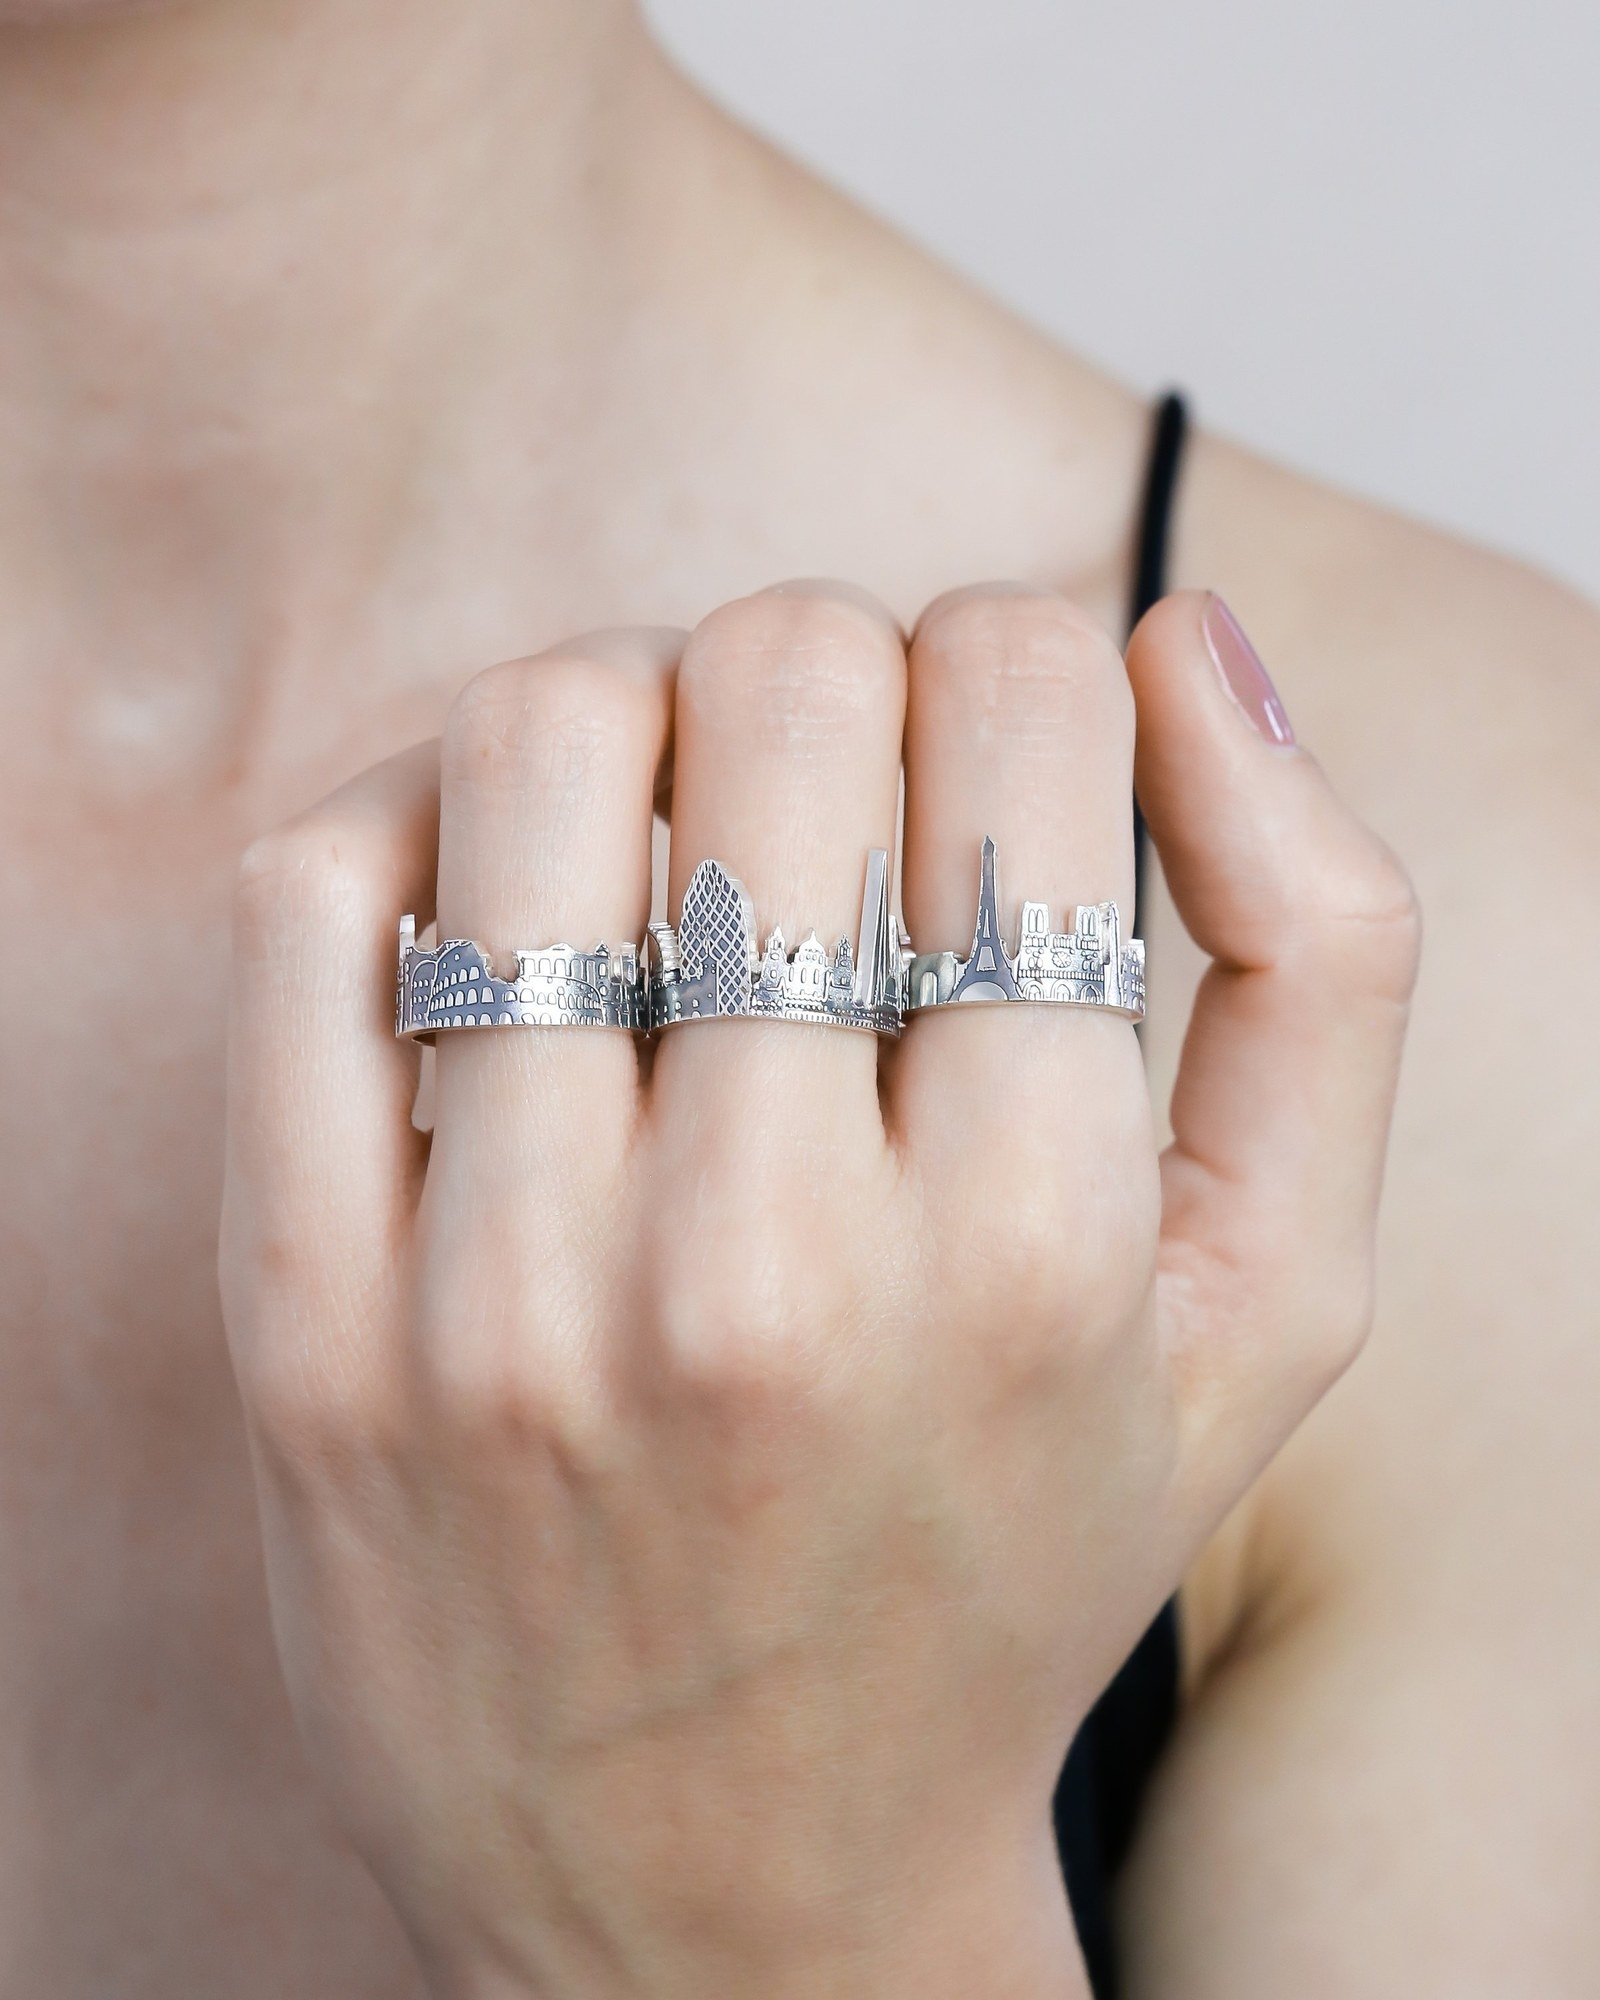 A hand with silver rings with Paris, London, and Rome skylines